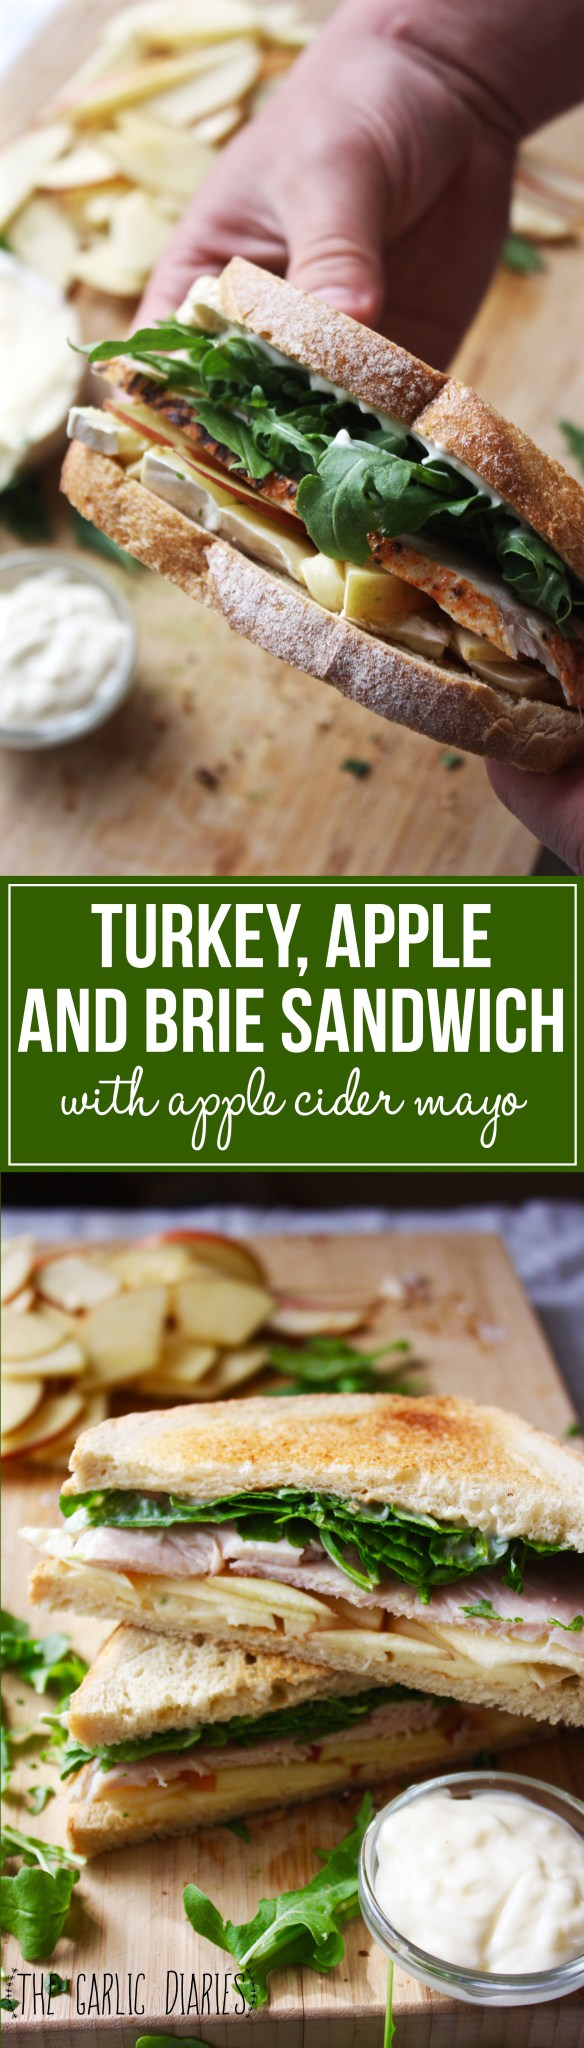 Turkey, Apple, and Brie Sandwich with Apple Cider Mayo - Easy, fresh, and SO flavorful!! The perfect sandwich -- TheGarlicDiaries.com